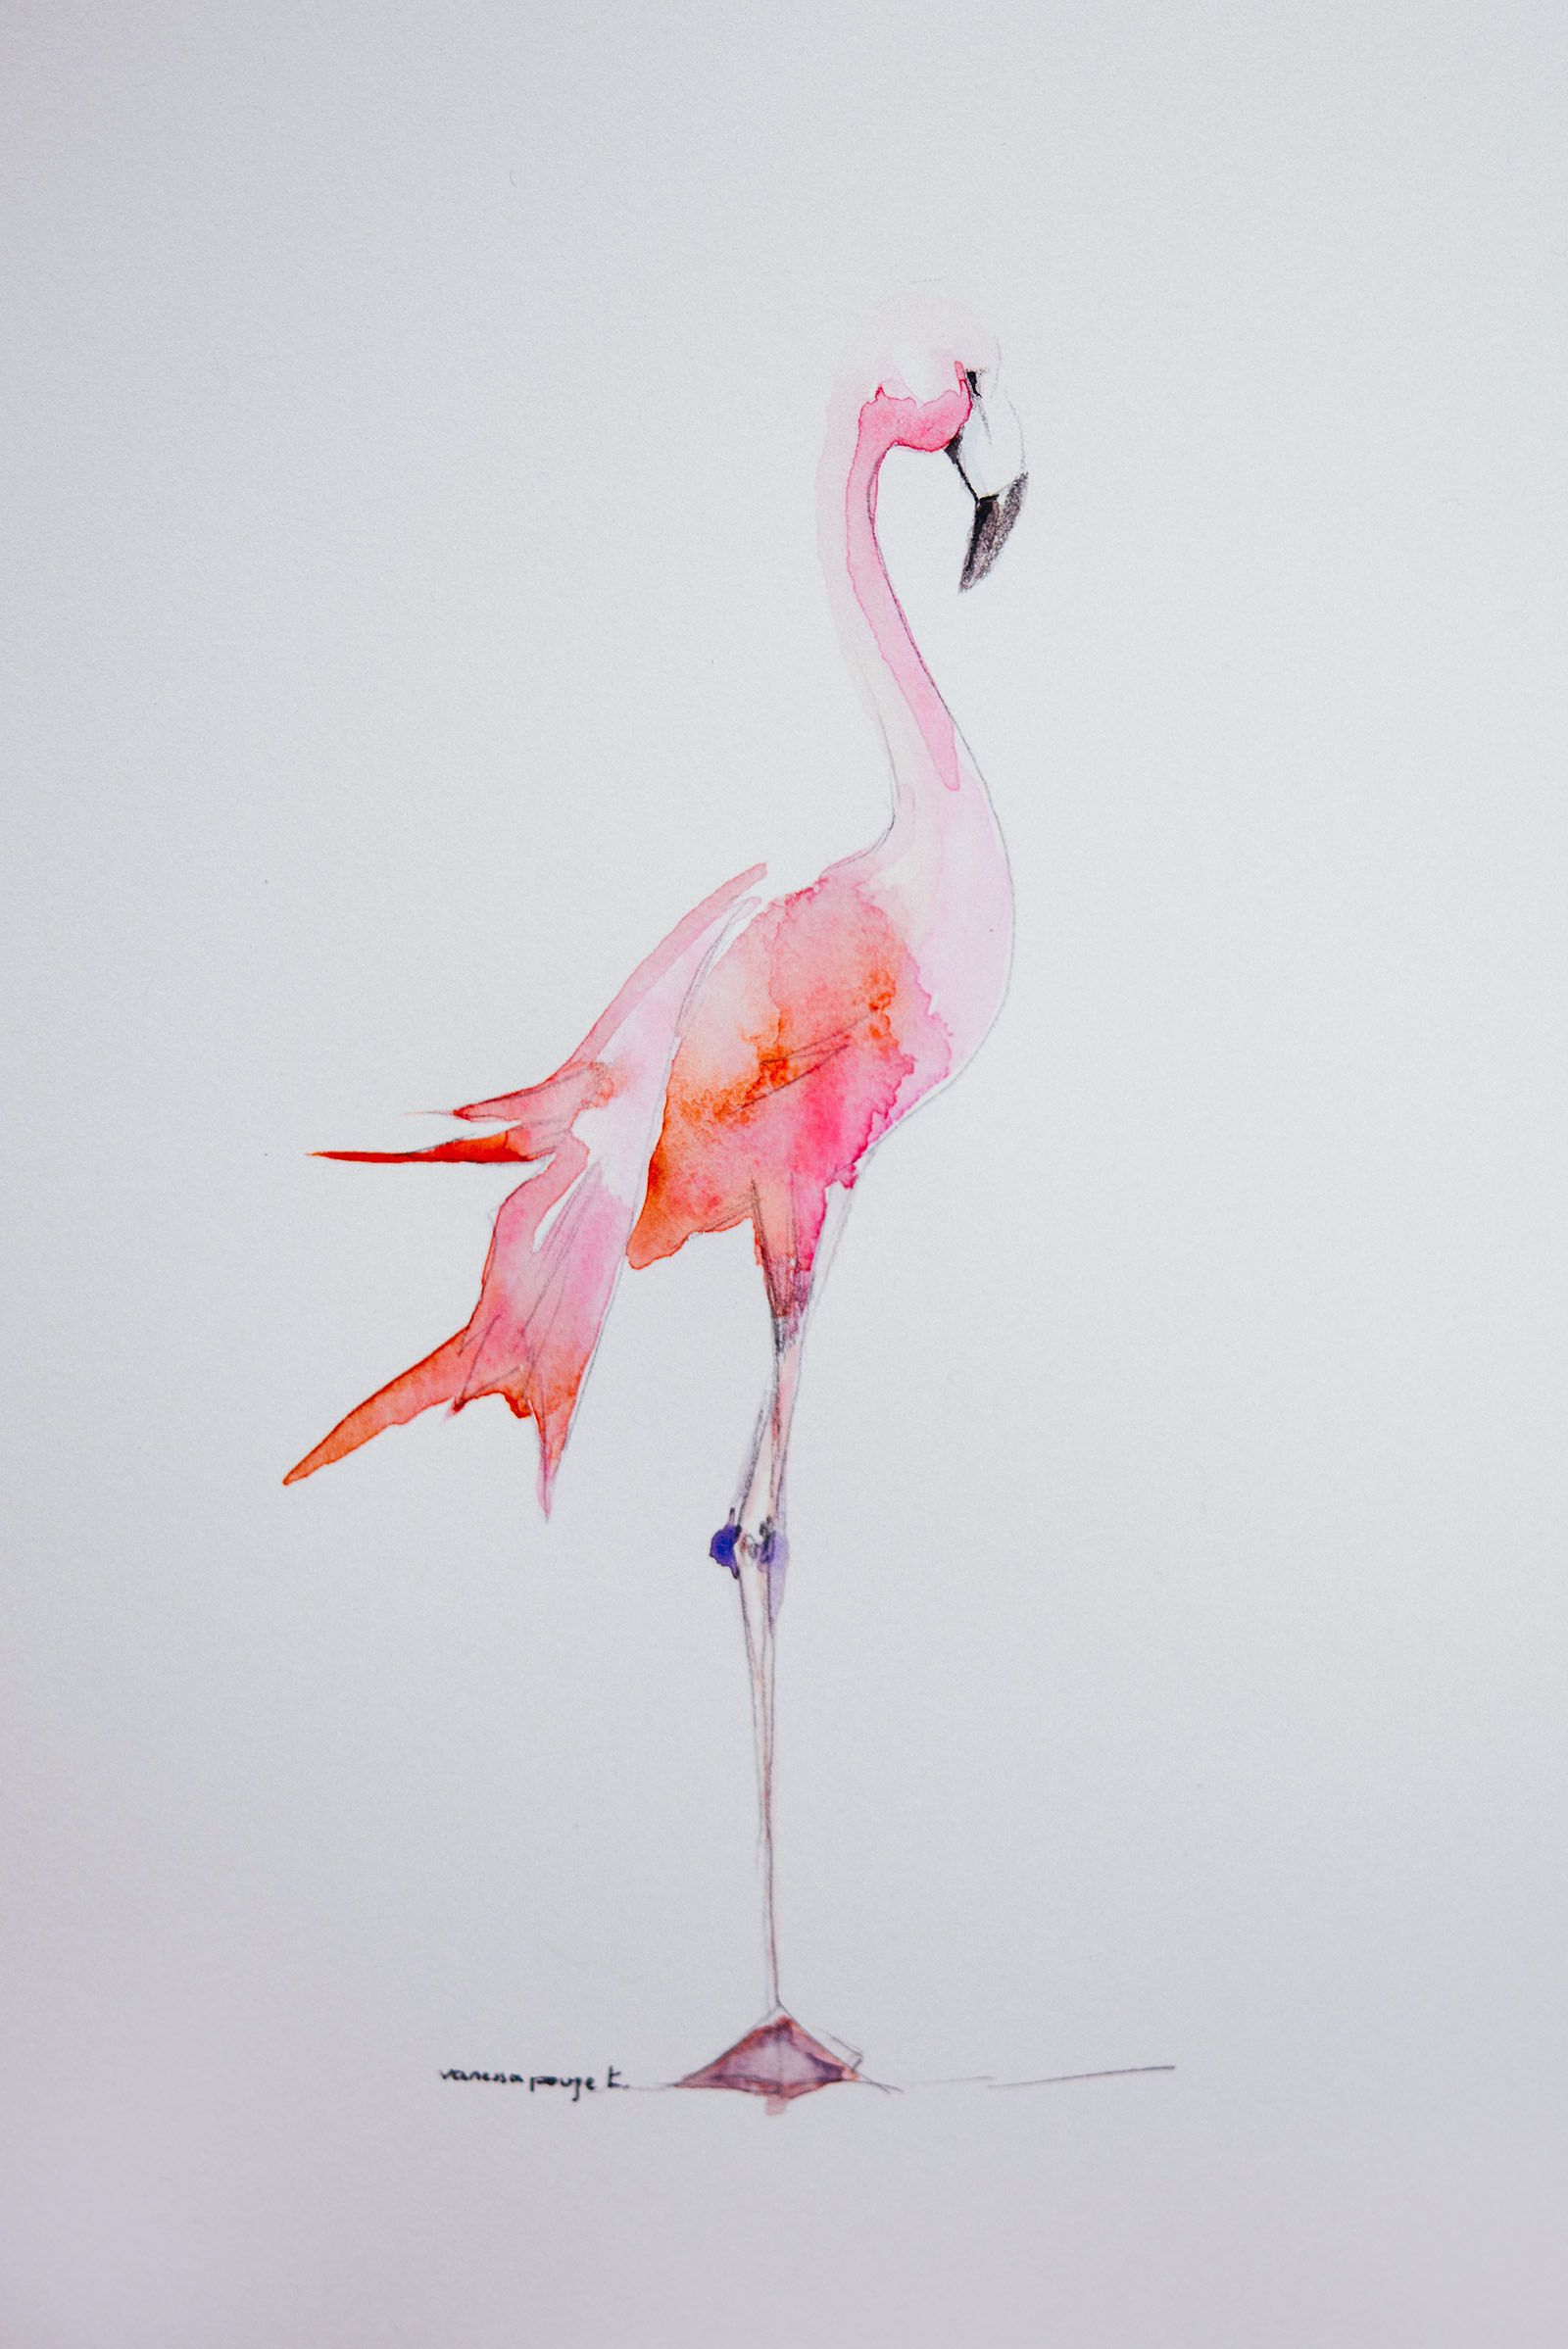 flamingo party - illustration - aquarelle - flamant rose - prêt à